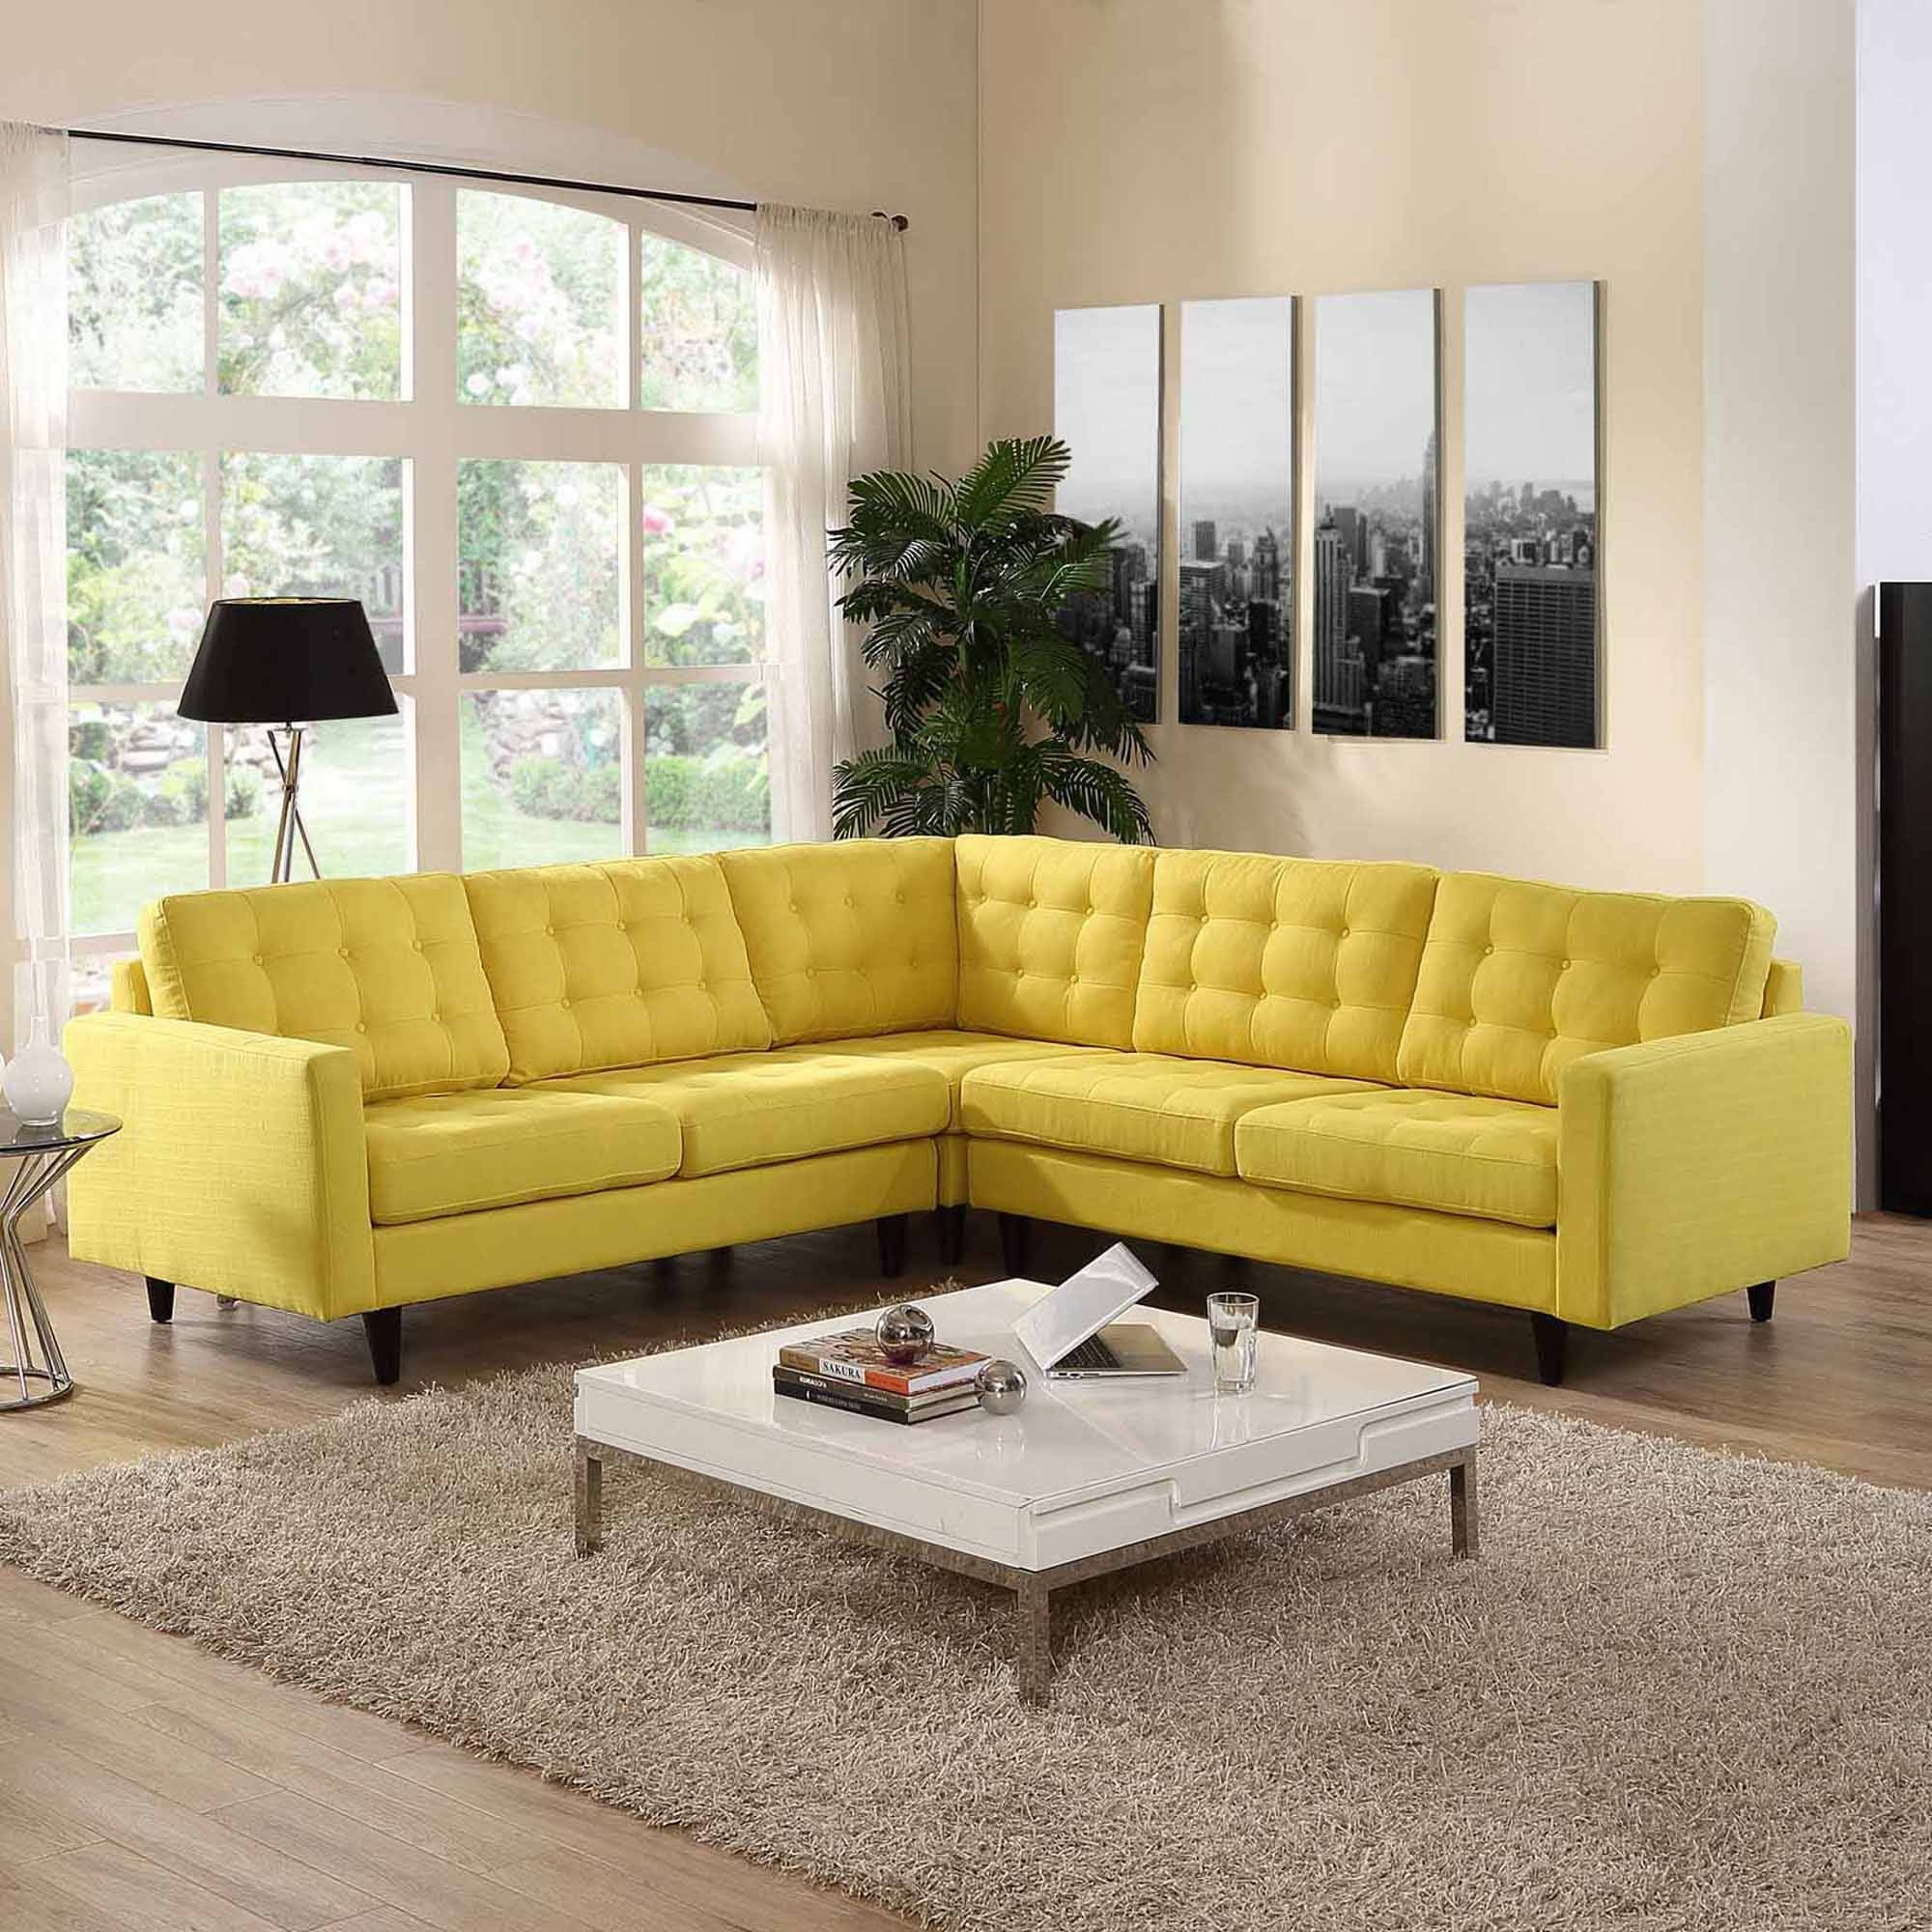 Awesome Colorful Sectional Sofas 98 On Leather Motion Sectional within Leather Motion Sectional Sofa (Image 2 of 25)